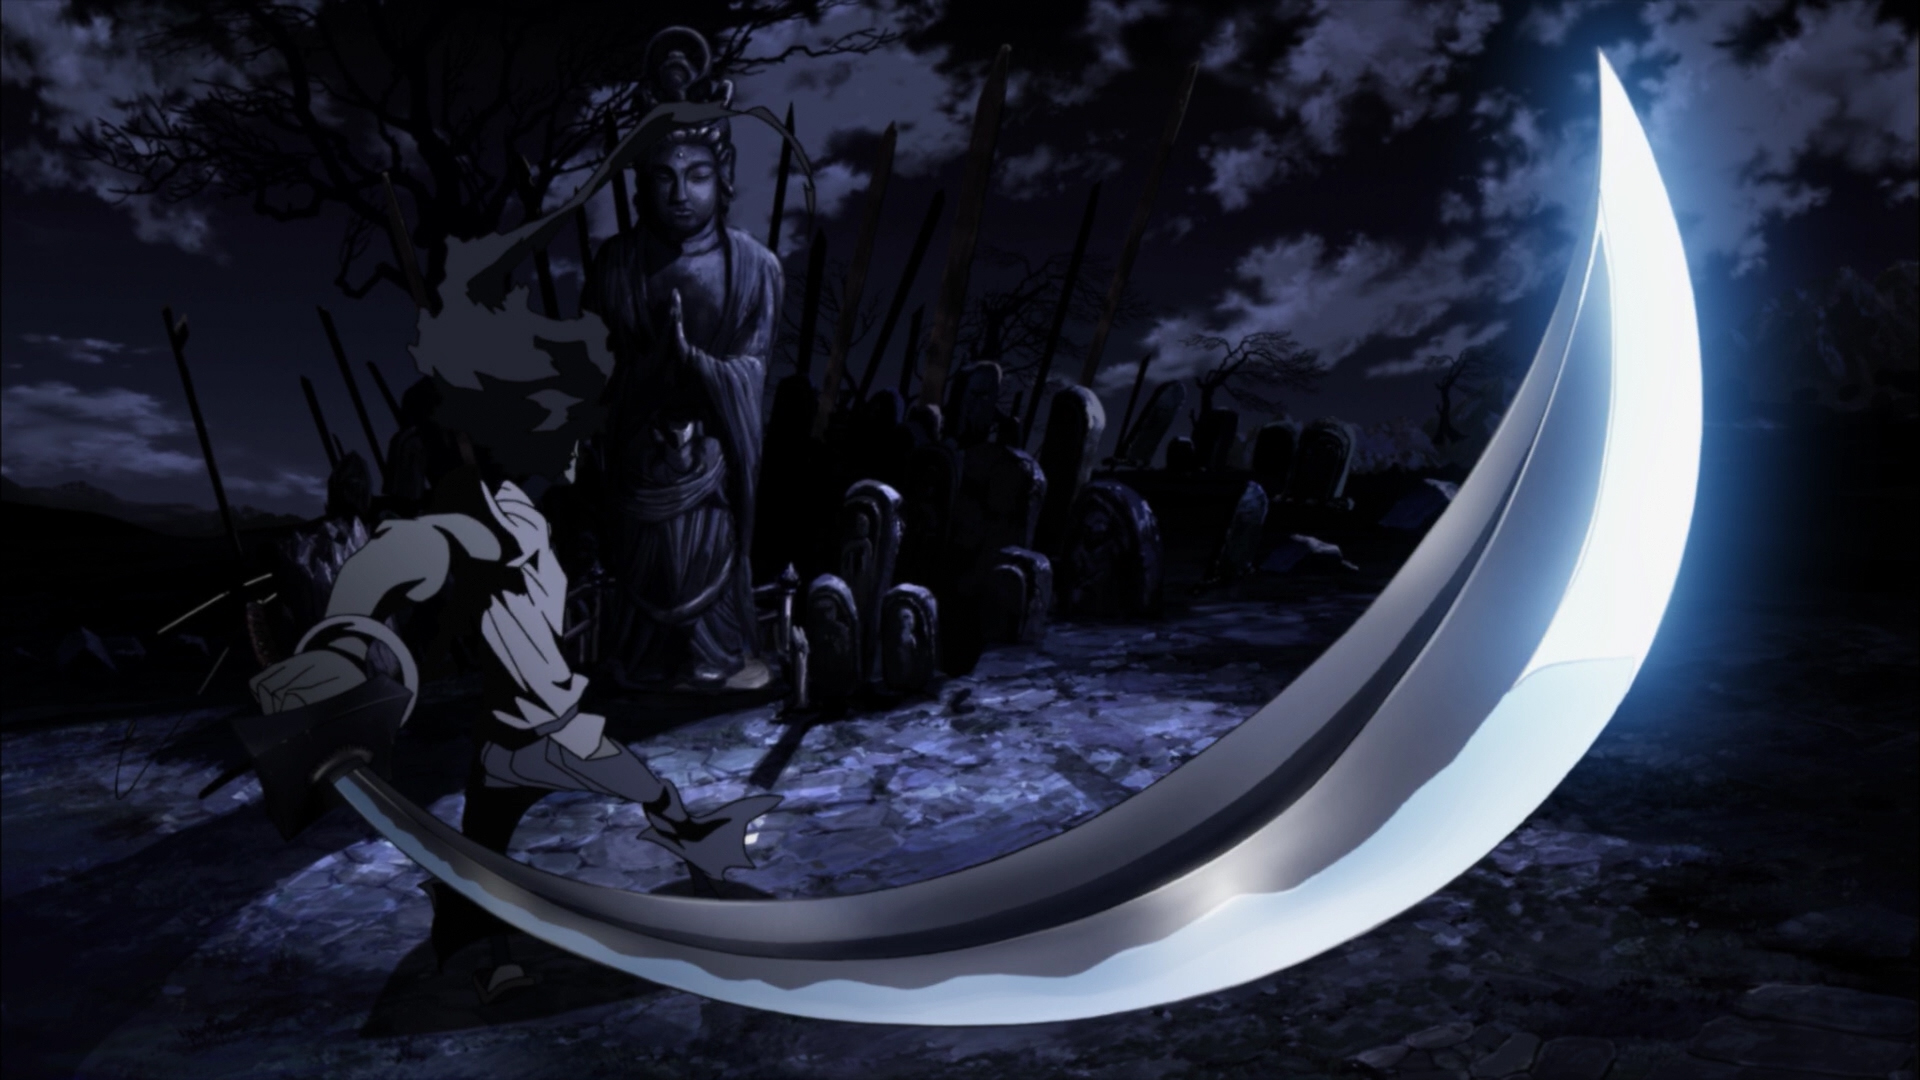 tags afro samurai samurai 1920 date 10 11 21 resolution 1920x1080 avg 1920x1080